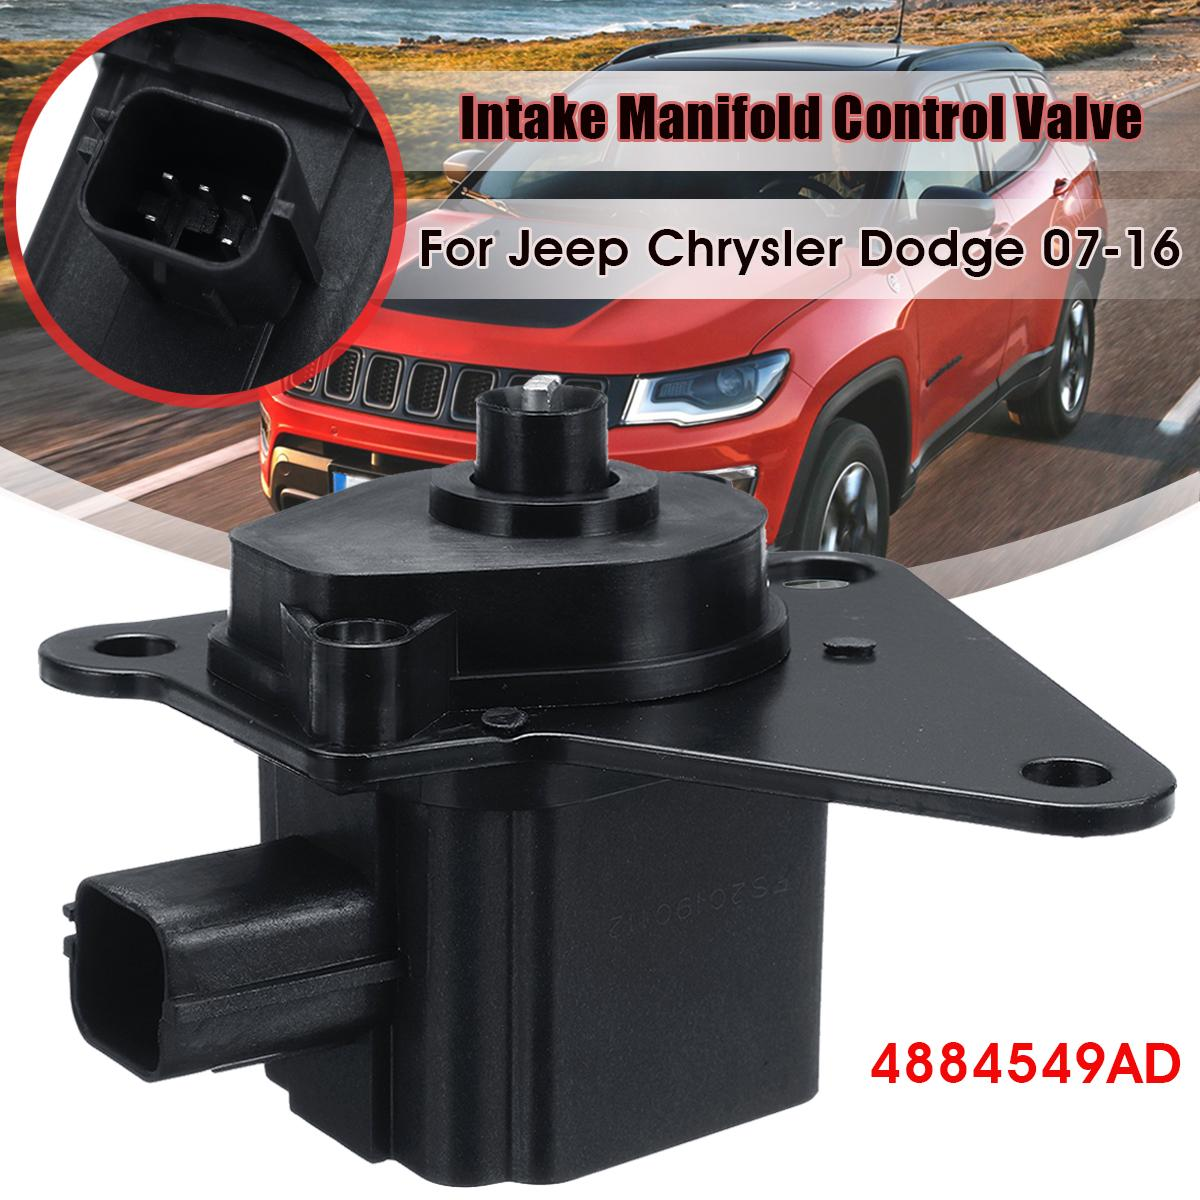 Durable Intake Manifold Runner Control Valve 4884549AD For Jeep Chrysler Dodge